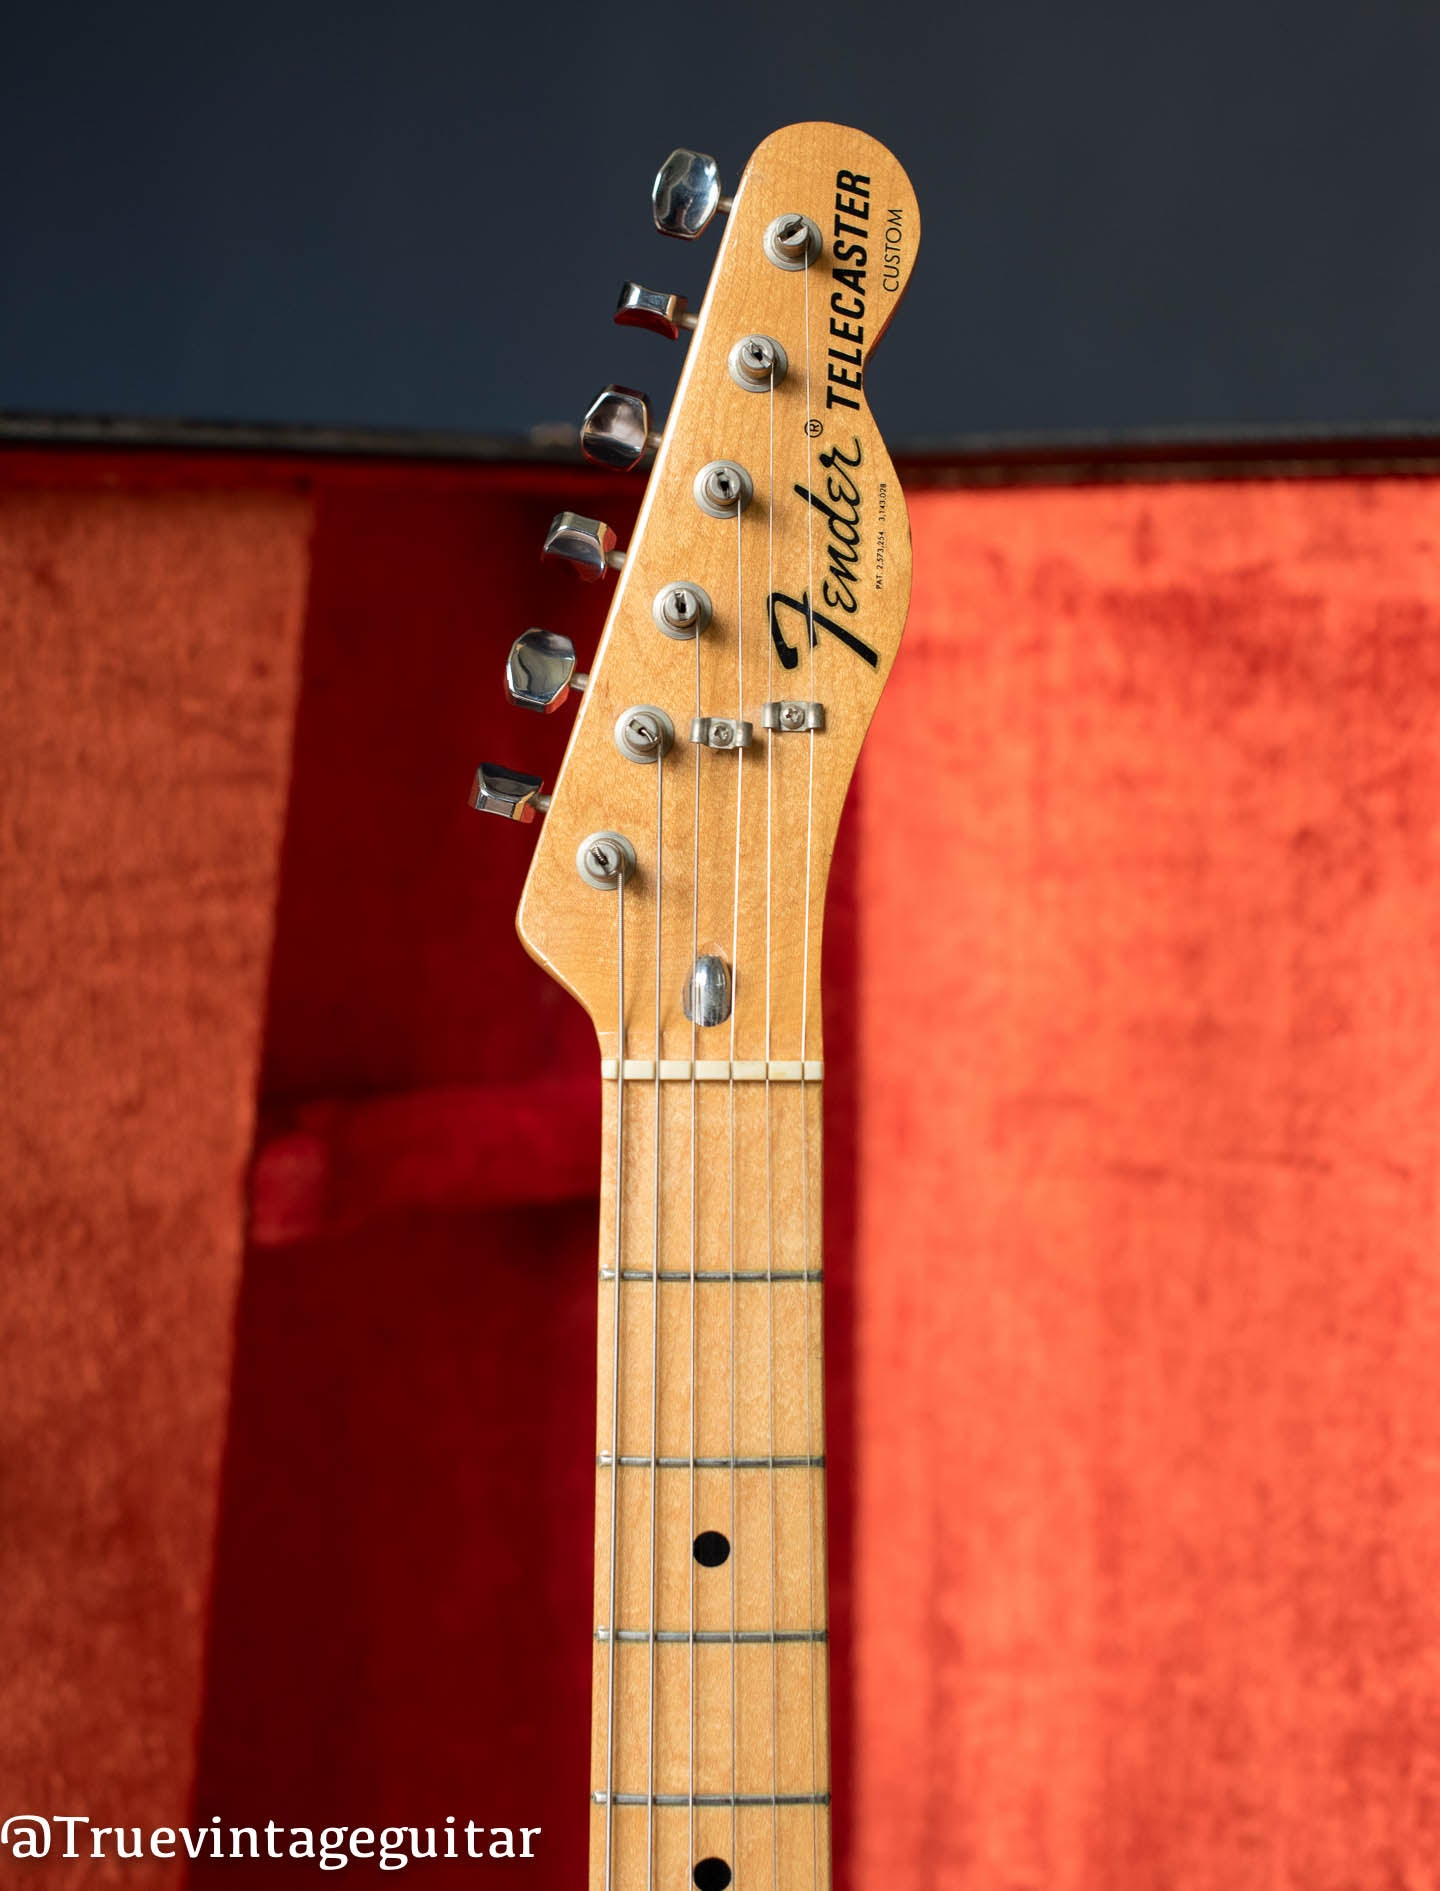 Fender Telecaster Custom headstock